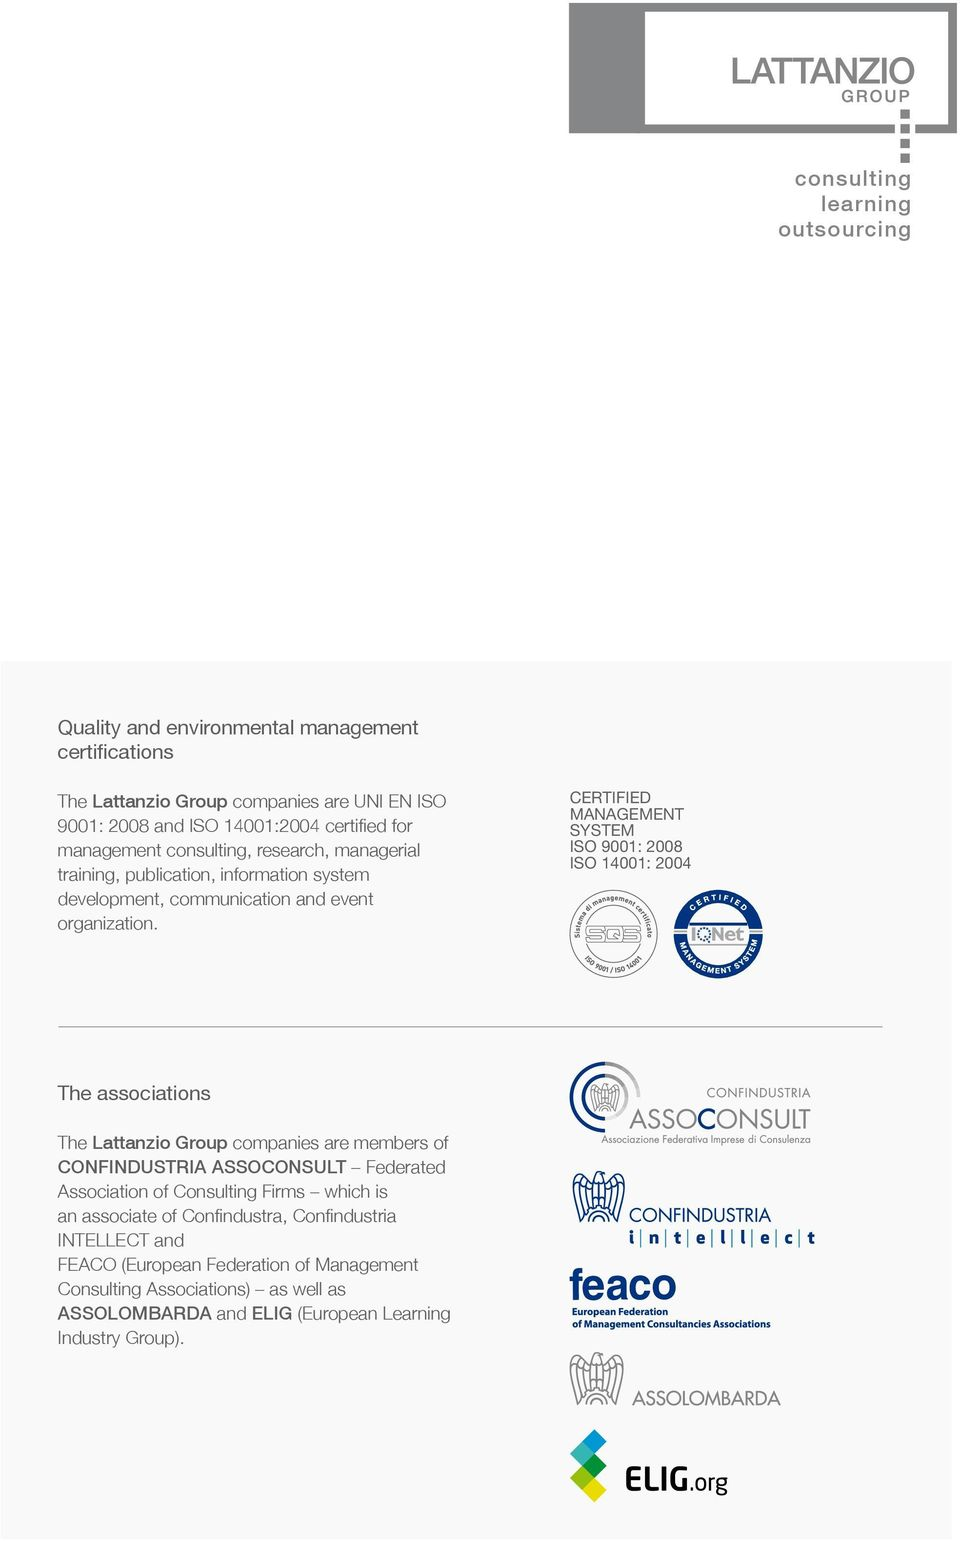 CERTIFIED MANAGEMENT SYSTEM ISO 9001: 2008 ISO 14001: 2004 The associations The Lattanzio Group companies are members of CONFINDUSTRIA ASSOCONSULT Federated Association of